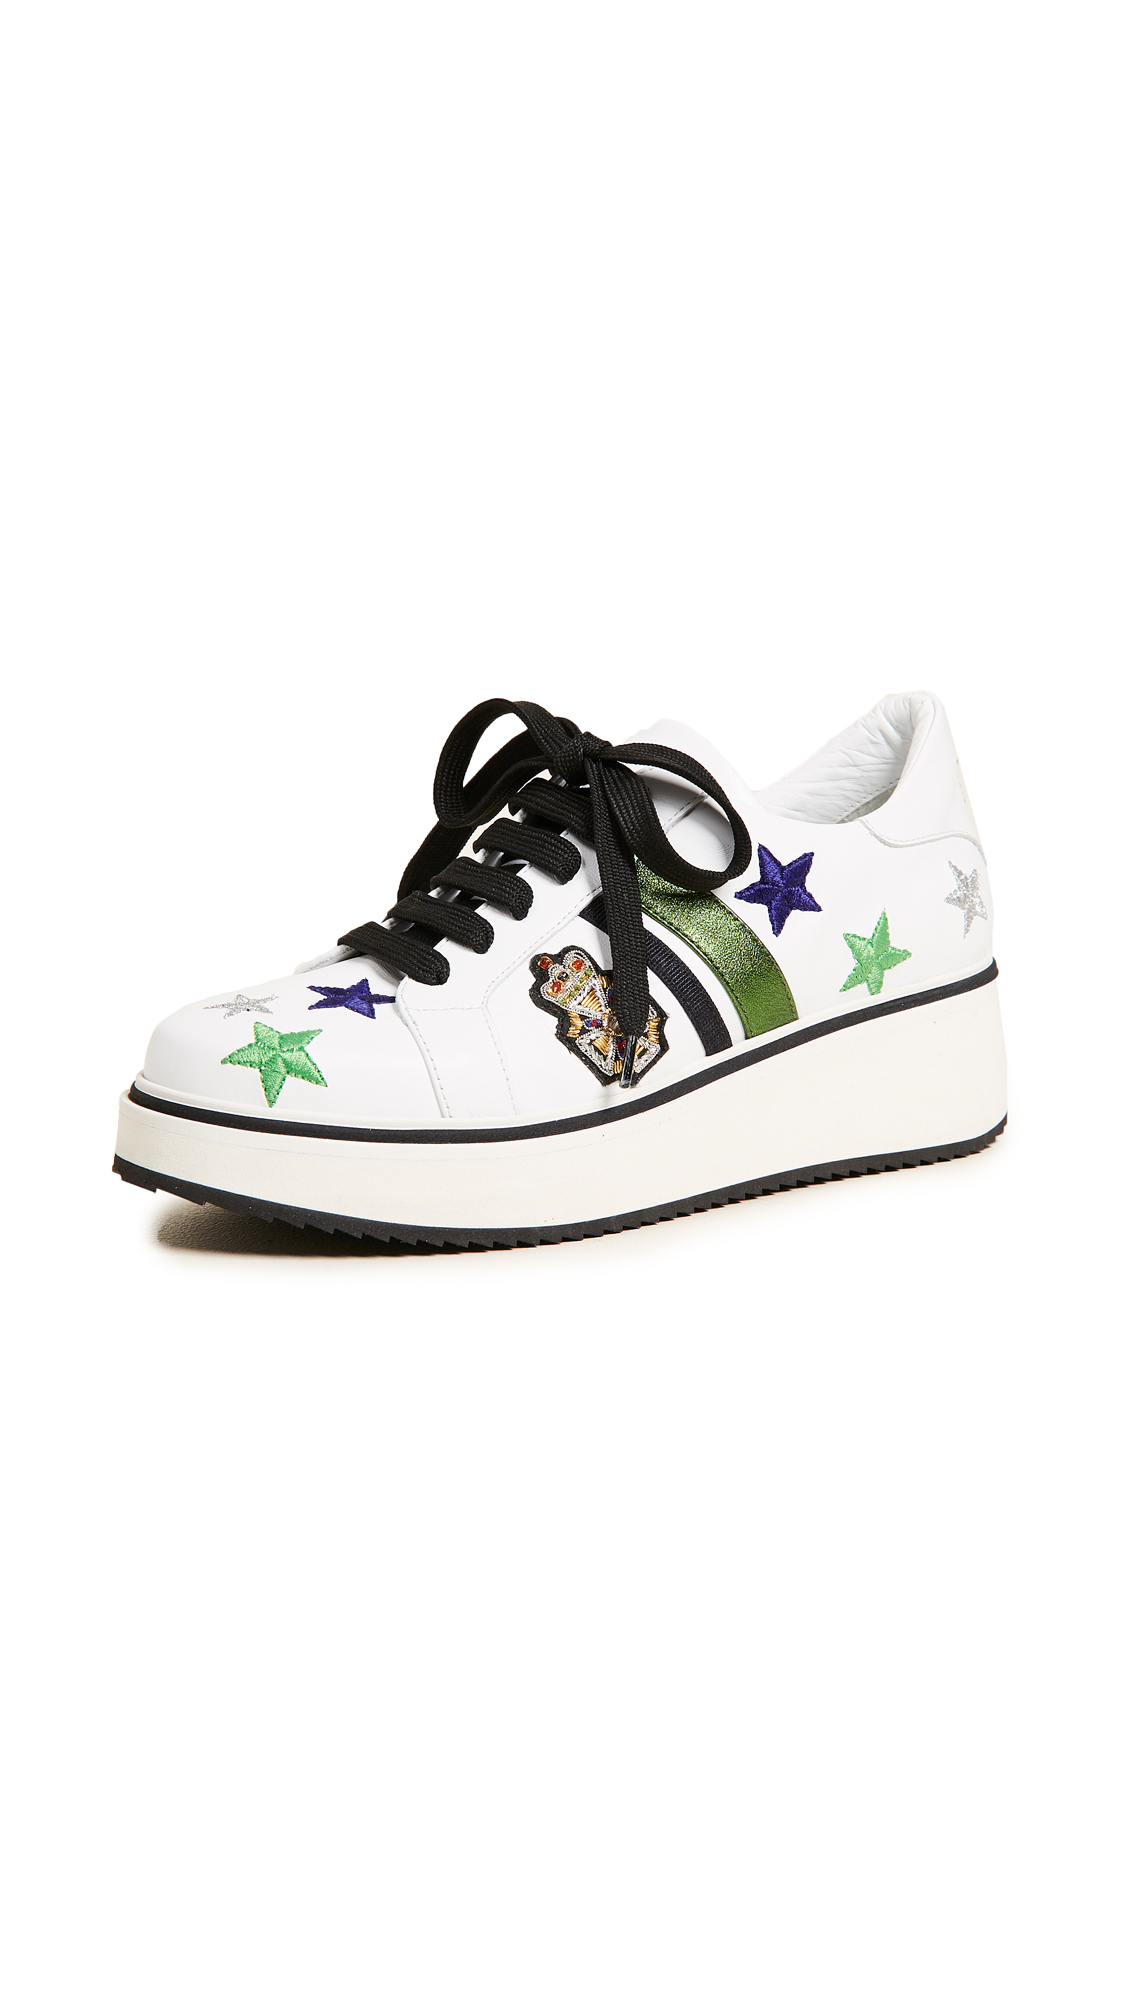 Veronica Beard Emmerson Sneakers - White/Silver/Green